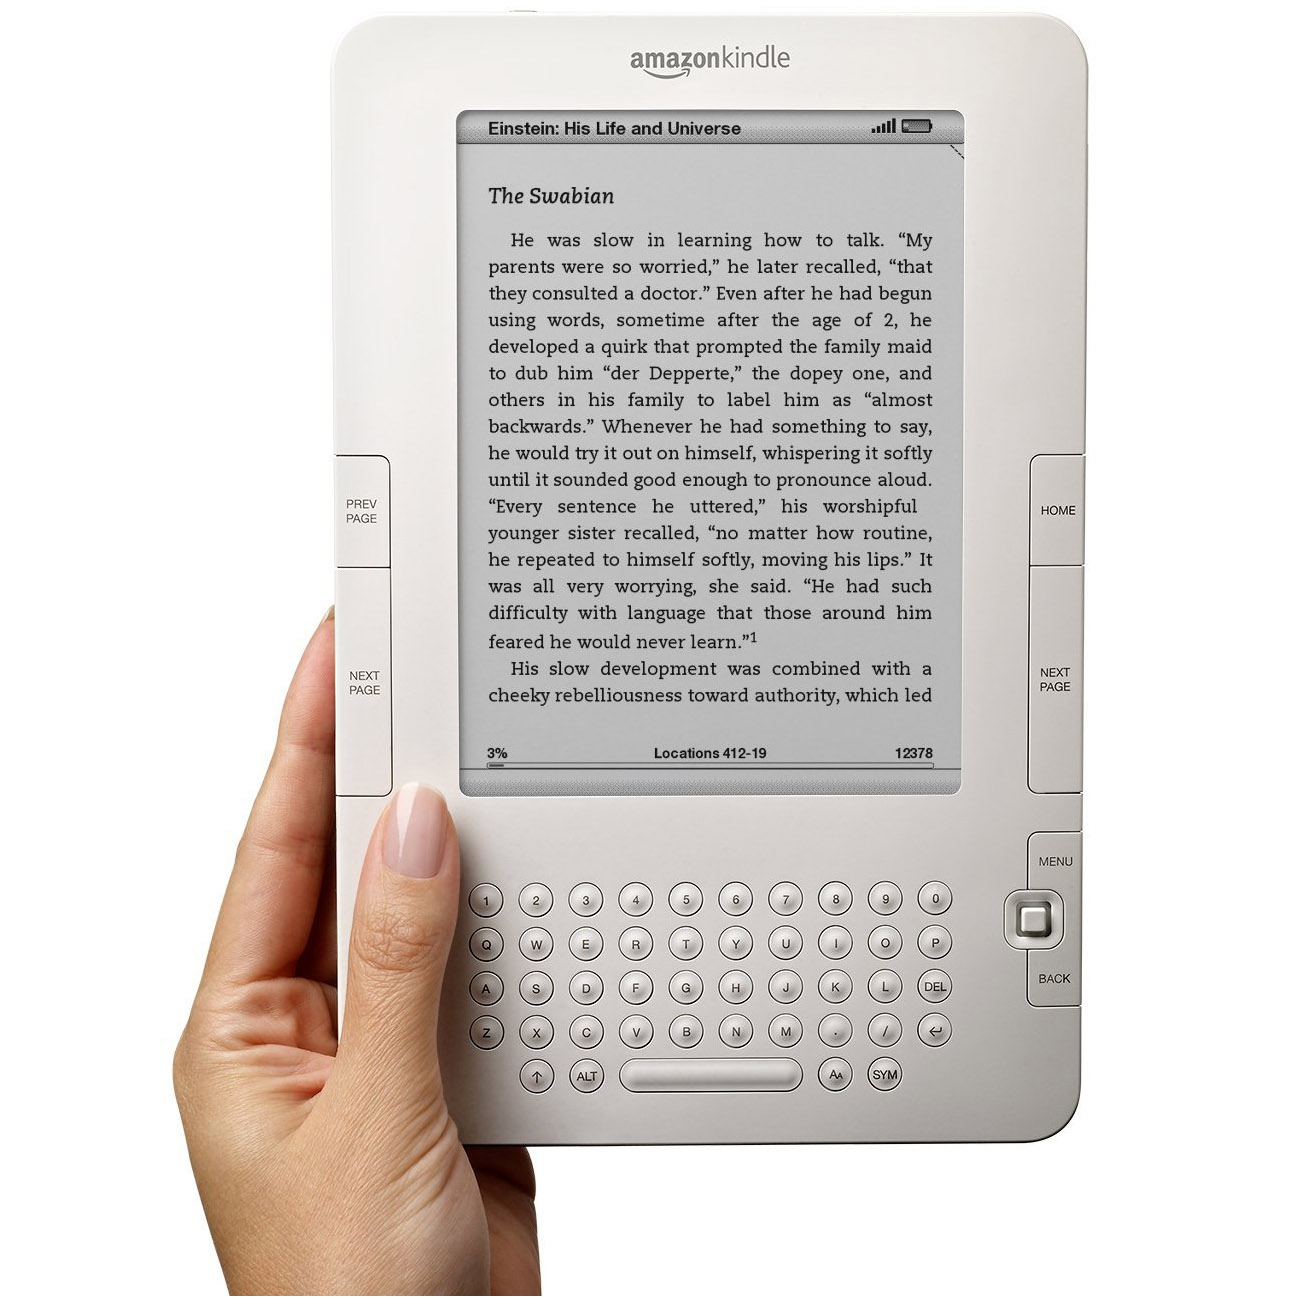 amazon-kindle-2-04